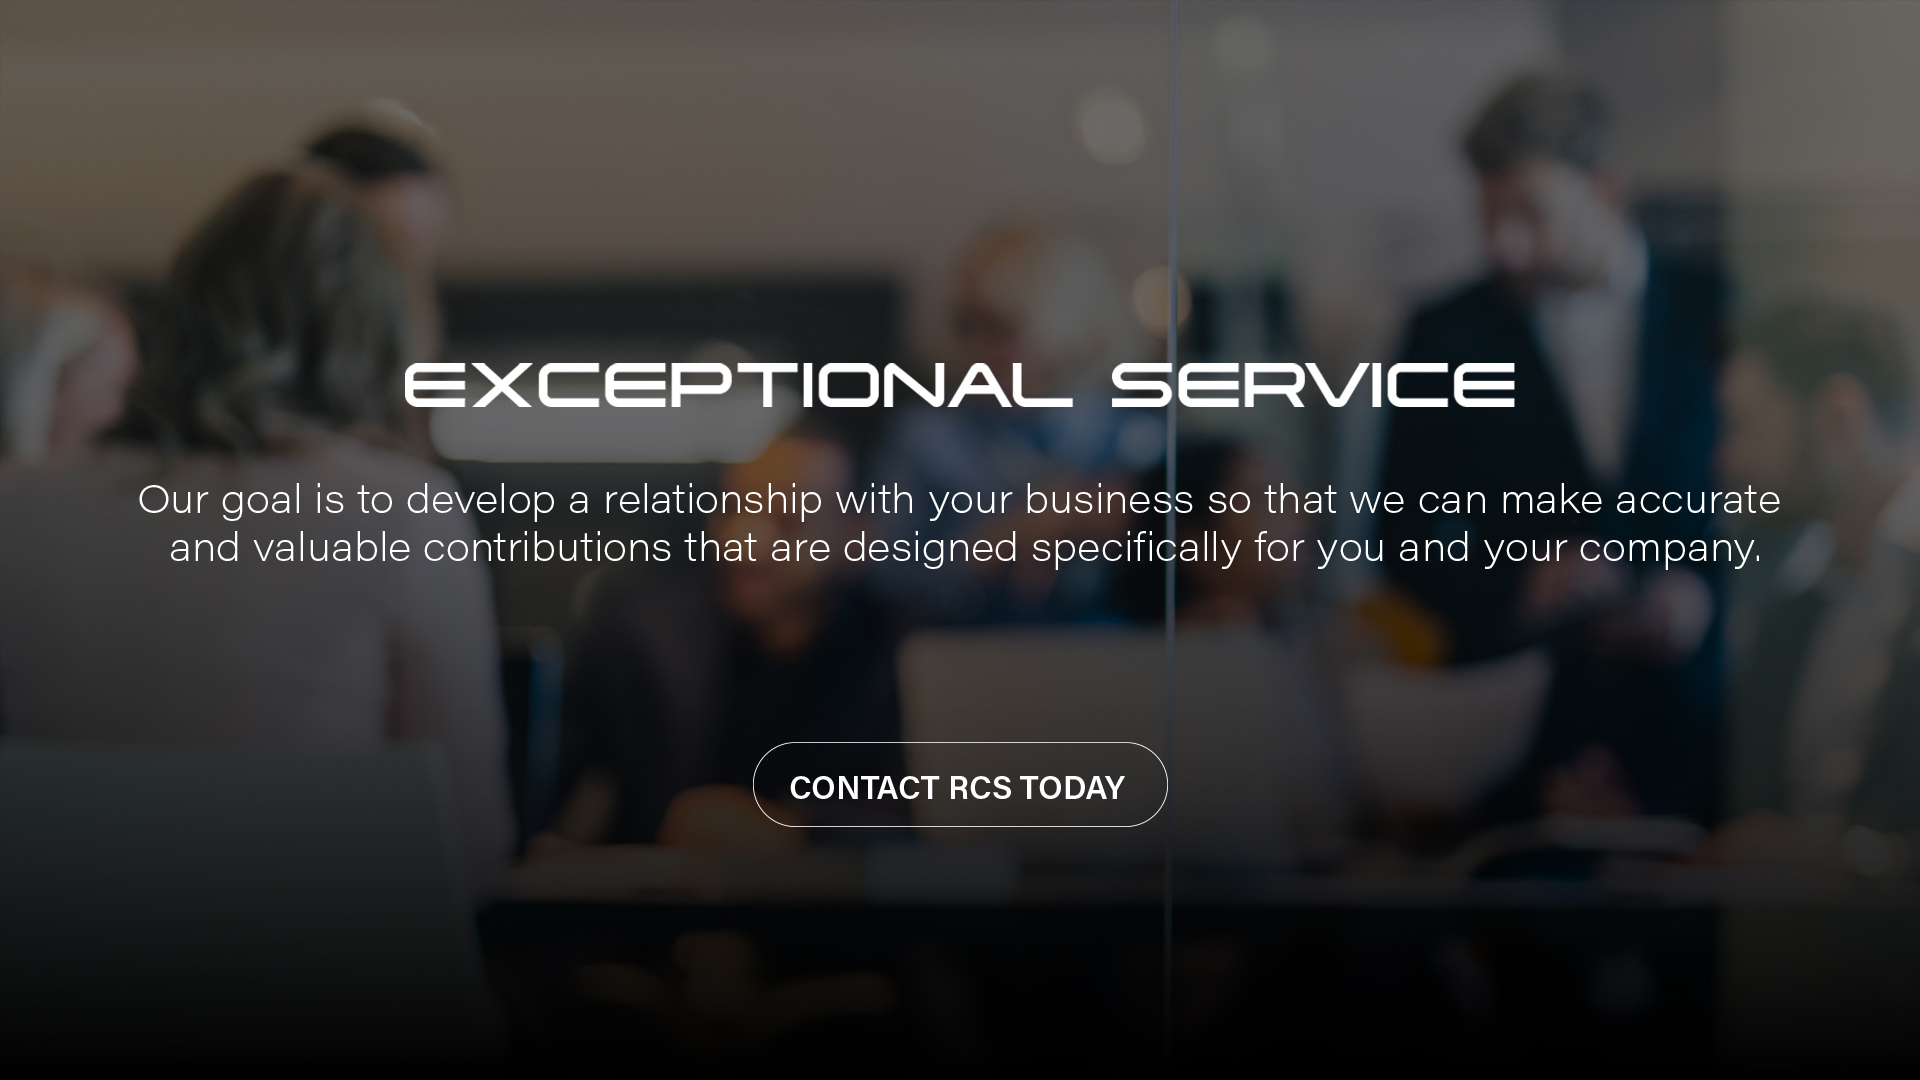 Exceptional Service | Our goal is to develop a relationship with your business so that we can make accurate and valuable contributions that are designed specifically for you and your company.